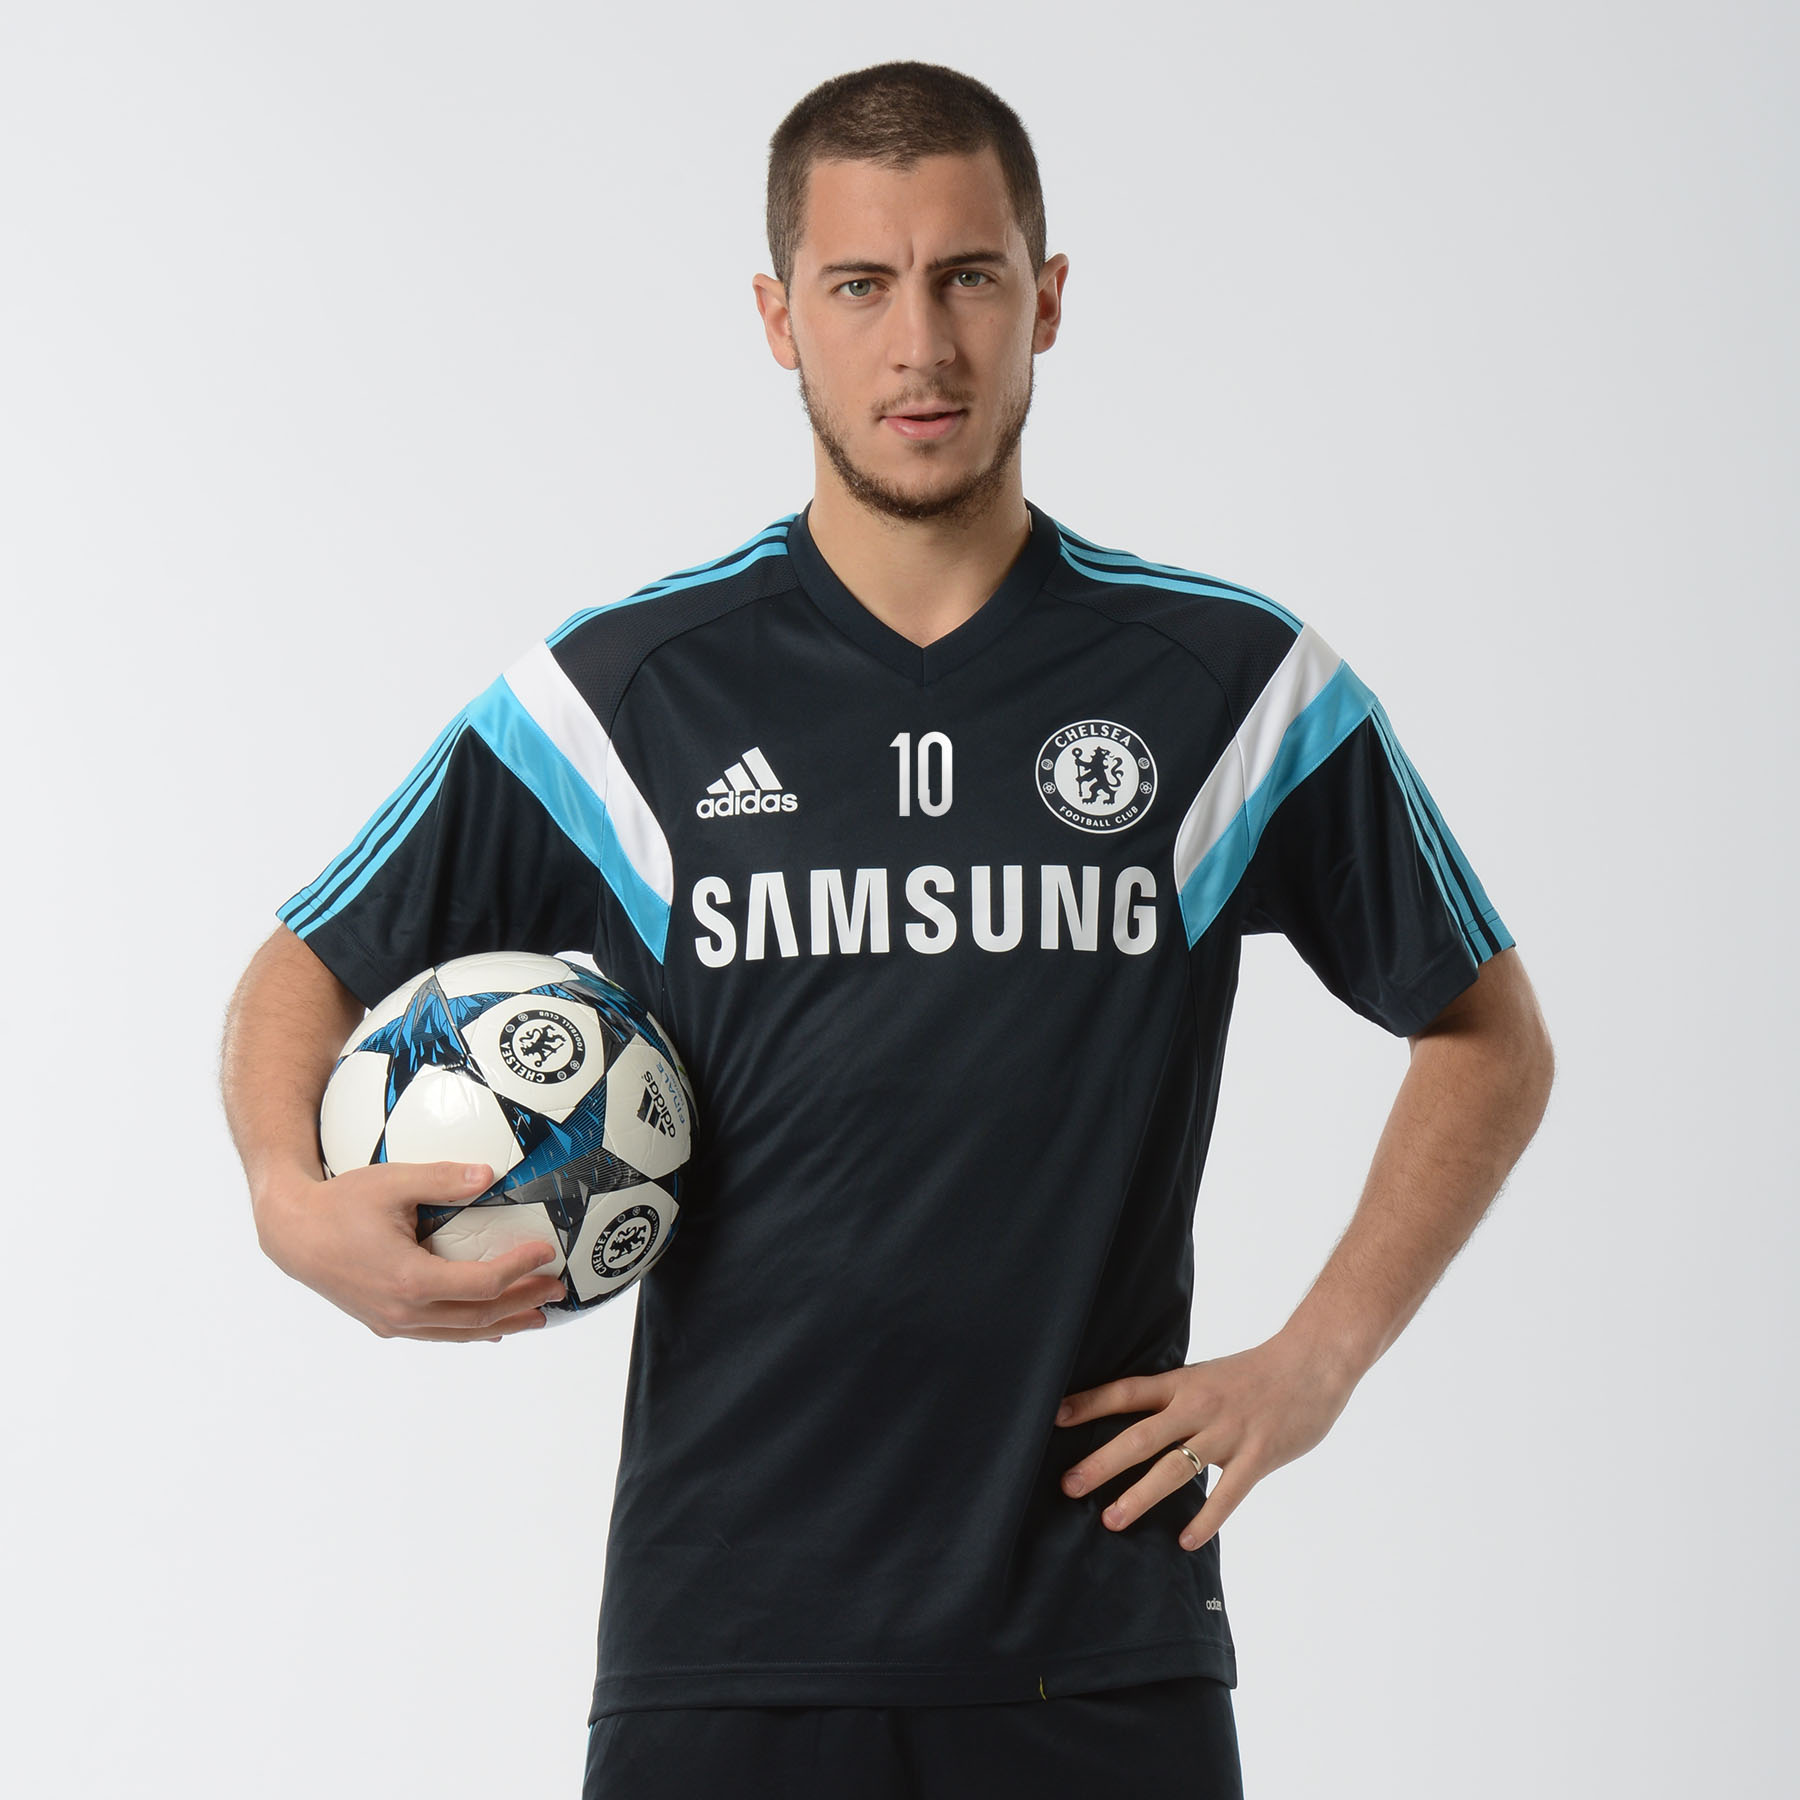 Chelsea Training Jersey Dark Blue   This adidas dark blue Chelsea Training Jersey provides ultimate performance and comfort while in motion so you can perform at your best game after game.   Styled with an adidas performance logo, adidas stripes and a Chelsea club crest lion badge, this Chelsea training jersey looks as good as it feels.   Benefits of this Chelsea training jersey •adidas performance logo and stripes •Chelsea club crest lion badge